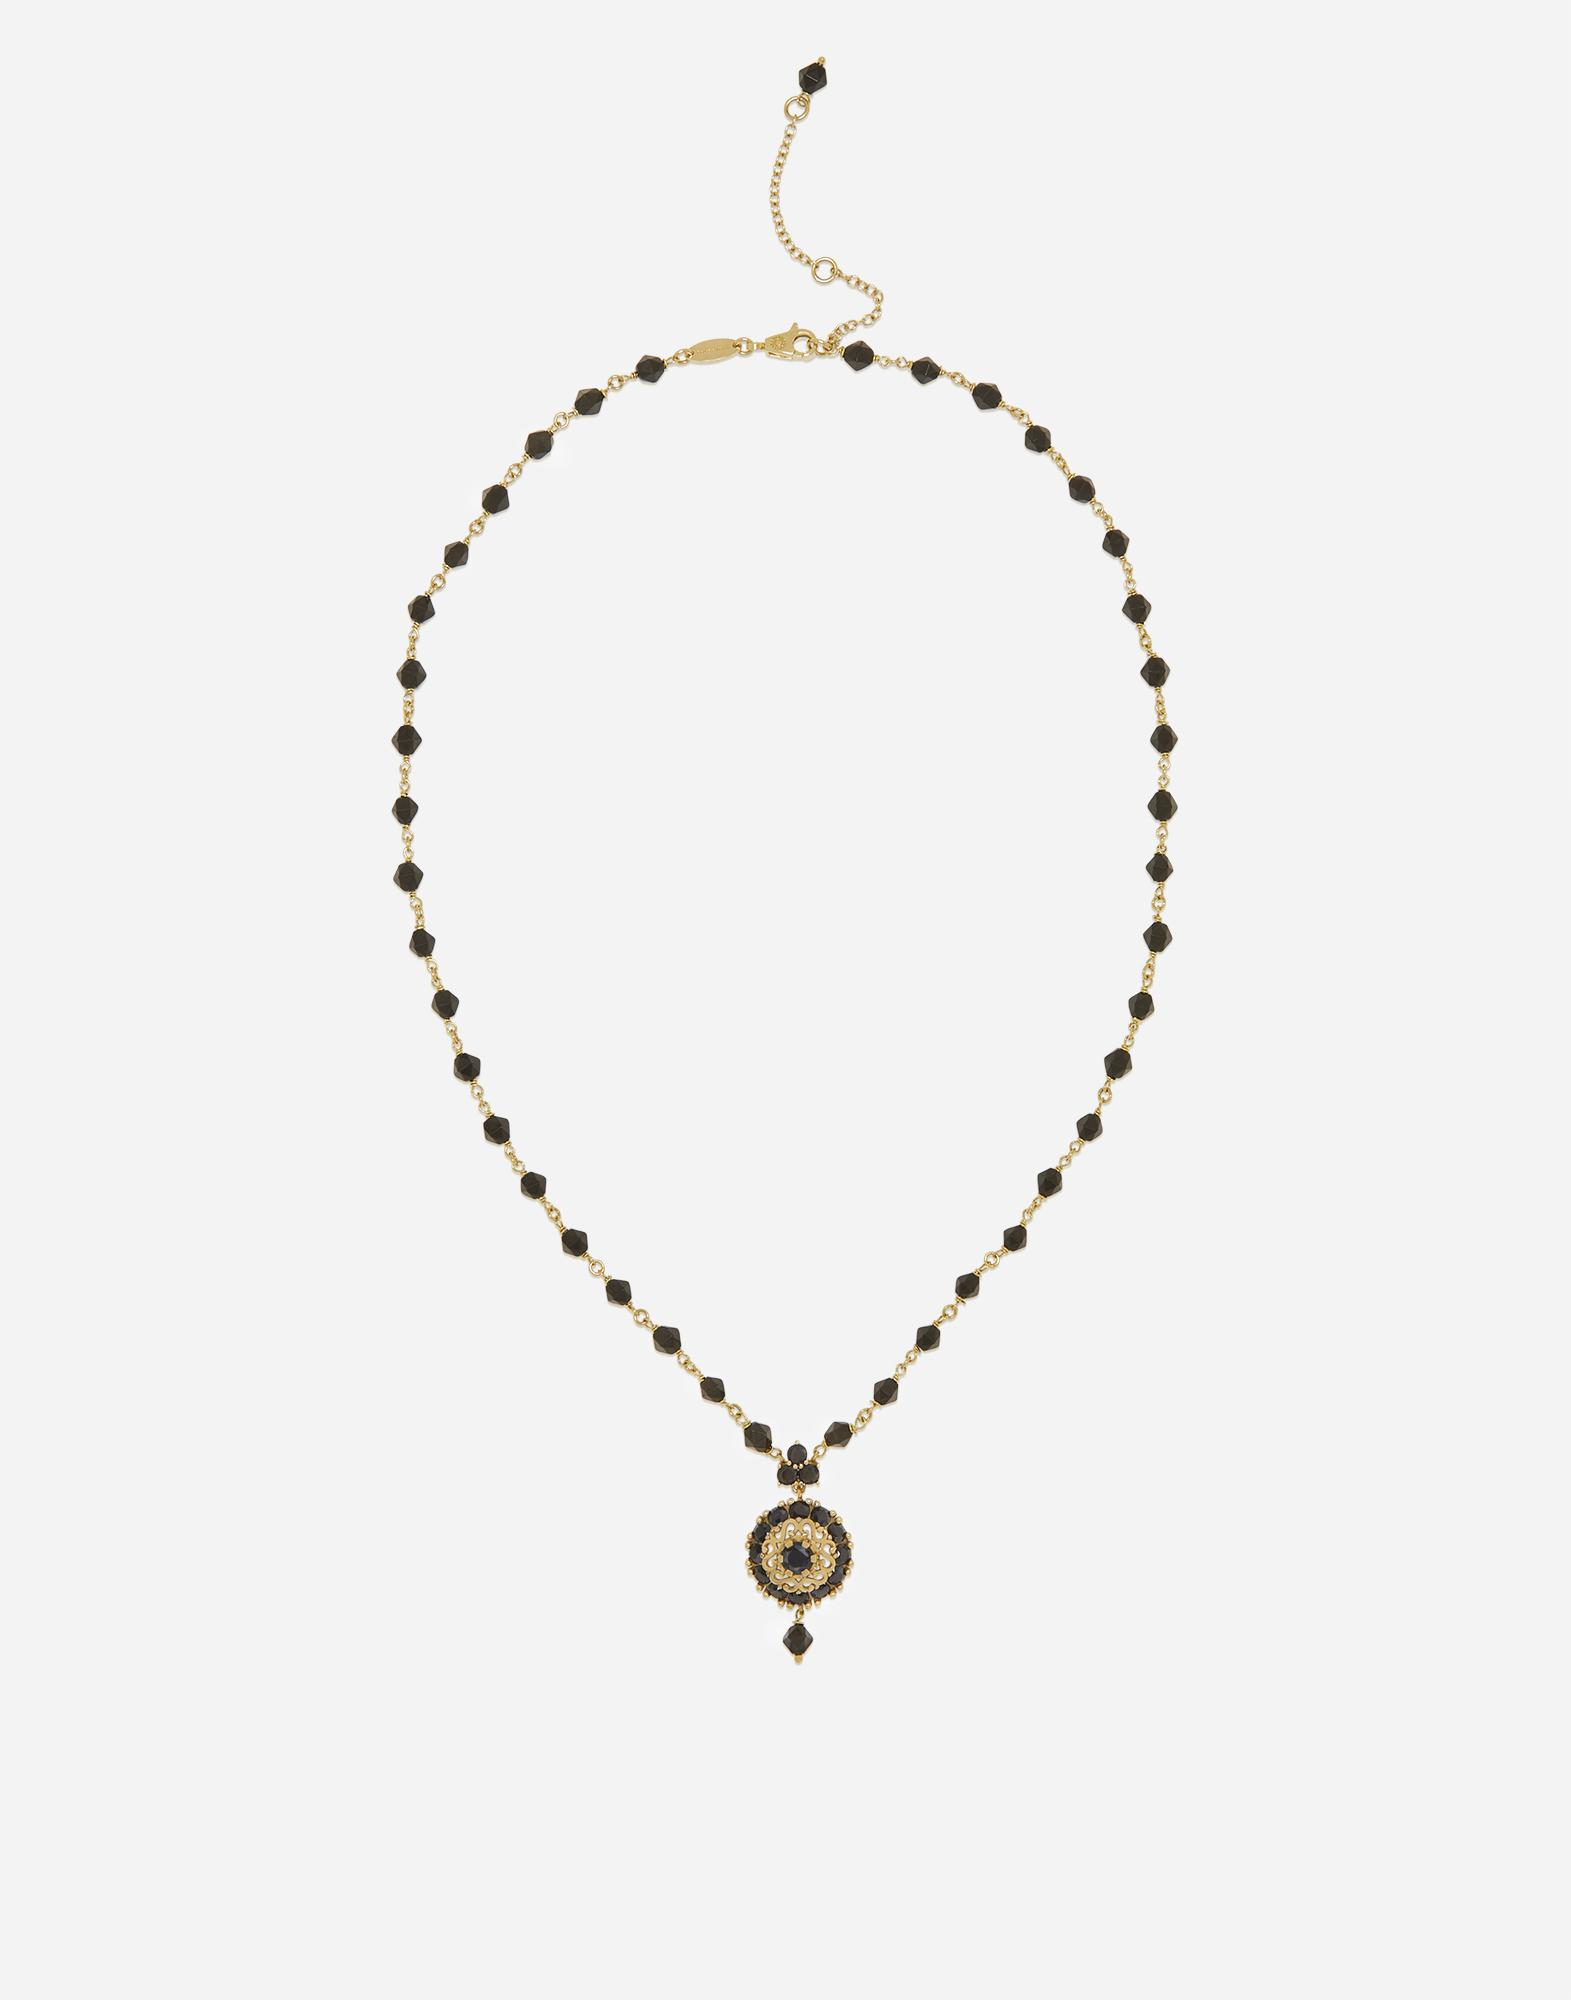 Necklace with black jade and sapphire pendant